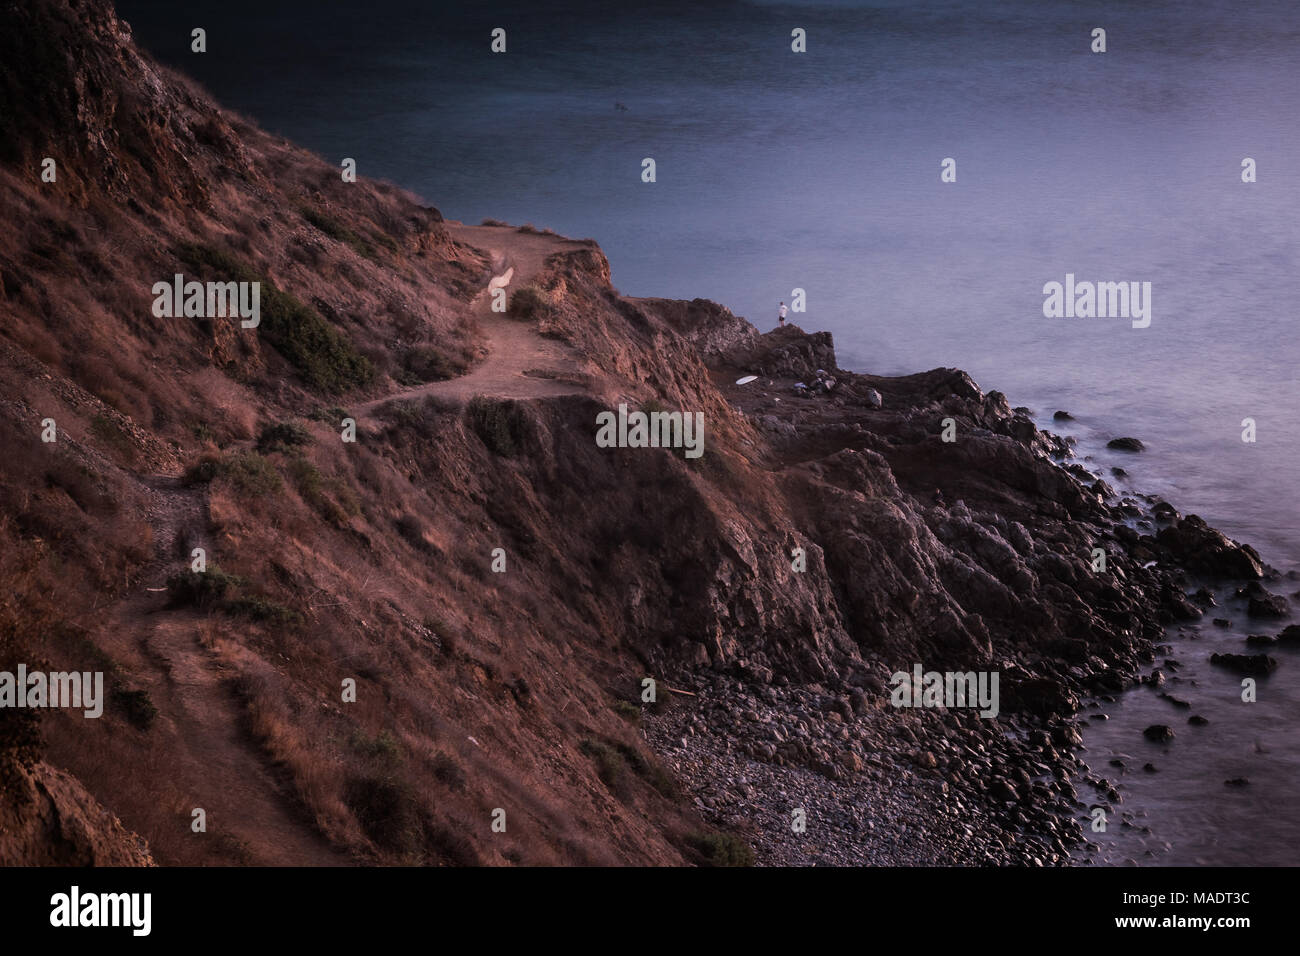 Long-exposure shot of smooth waves crashing into Flat Rock Point rock formations and Bluff Cove Trail after sunset, Palos Verdes Estates, California Stock Photo